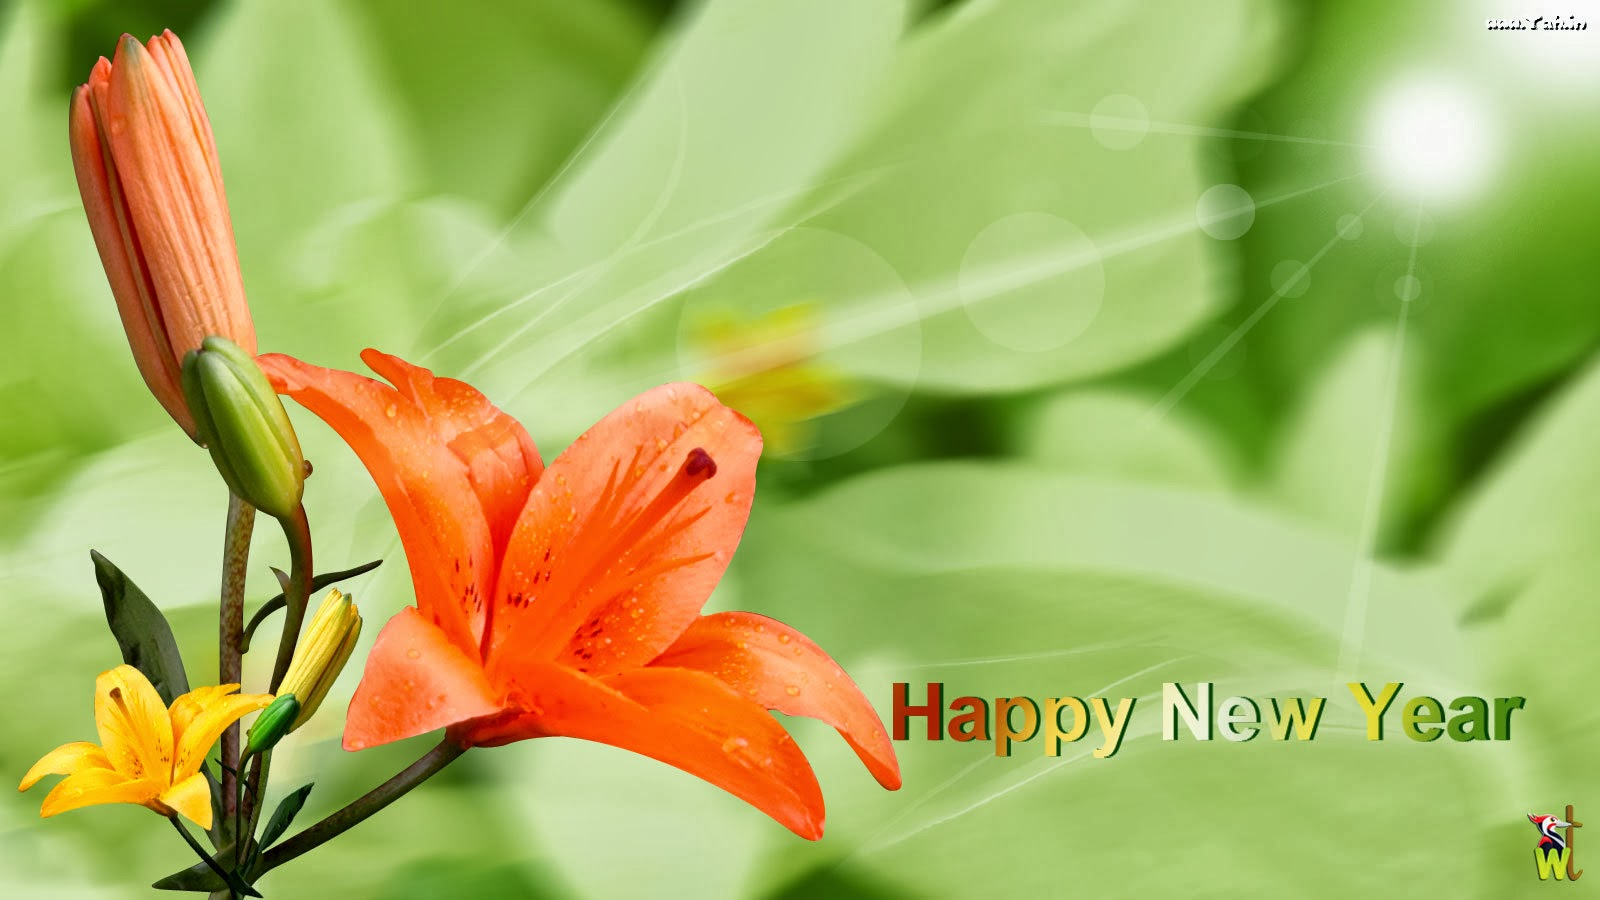 Happy new year flowers gifts wishes wallpapers